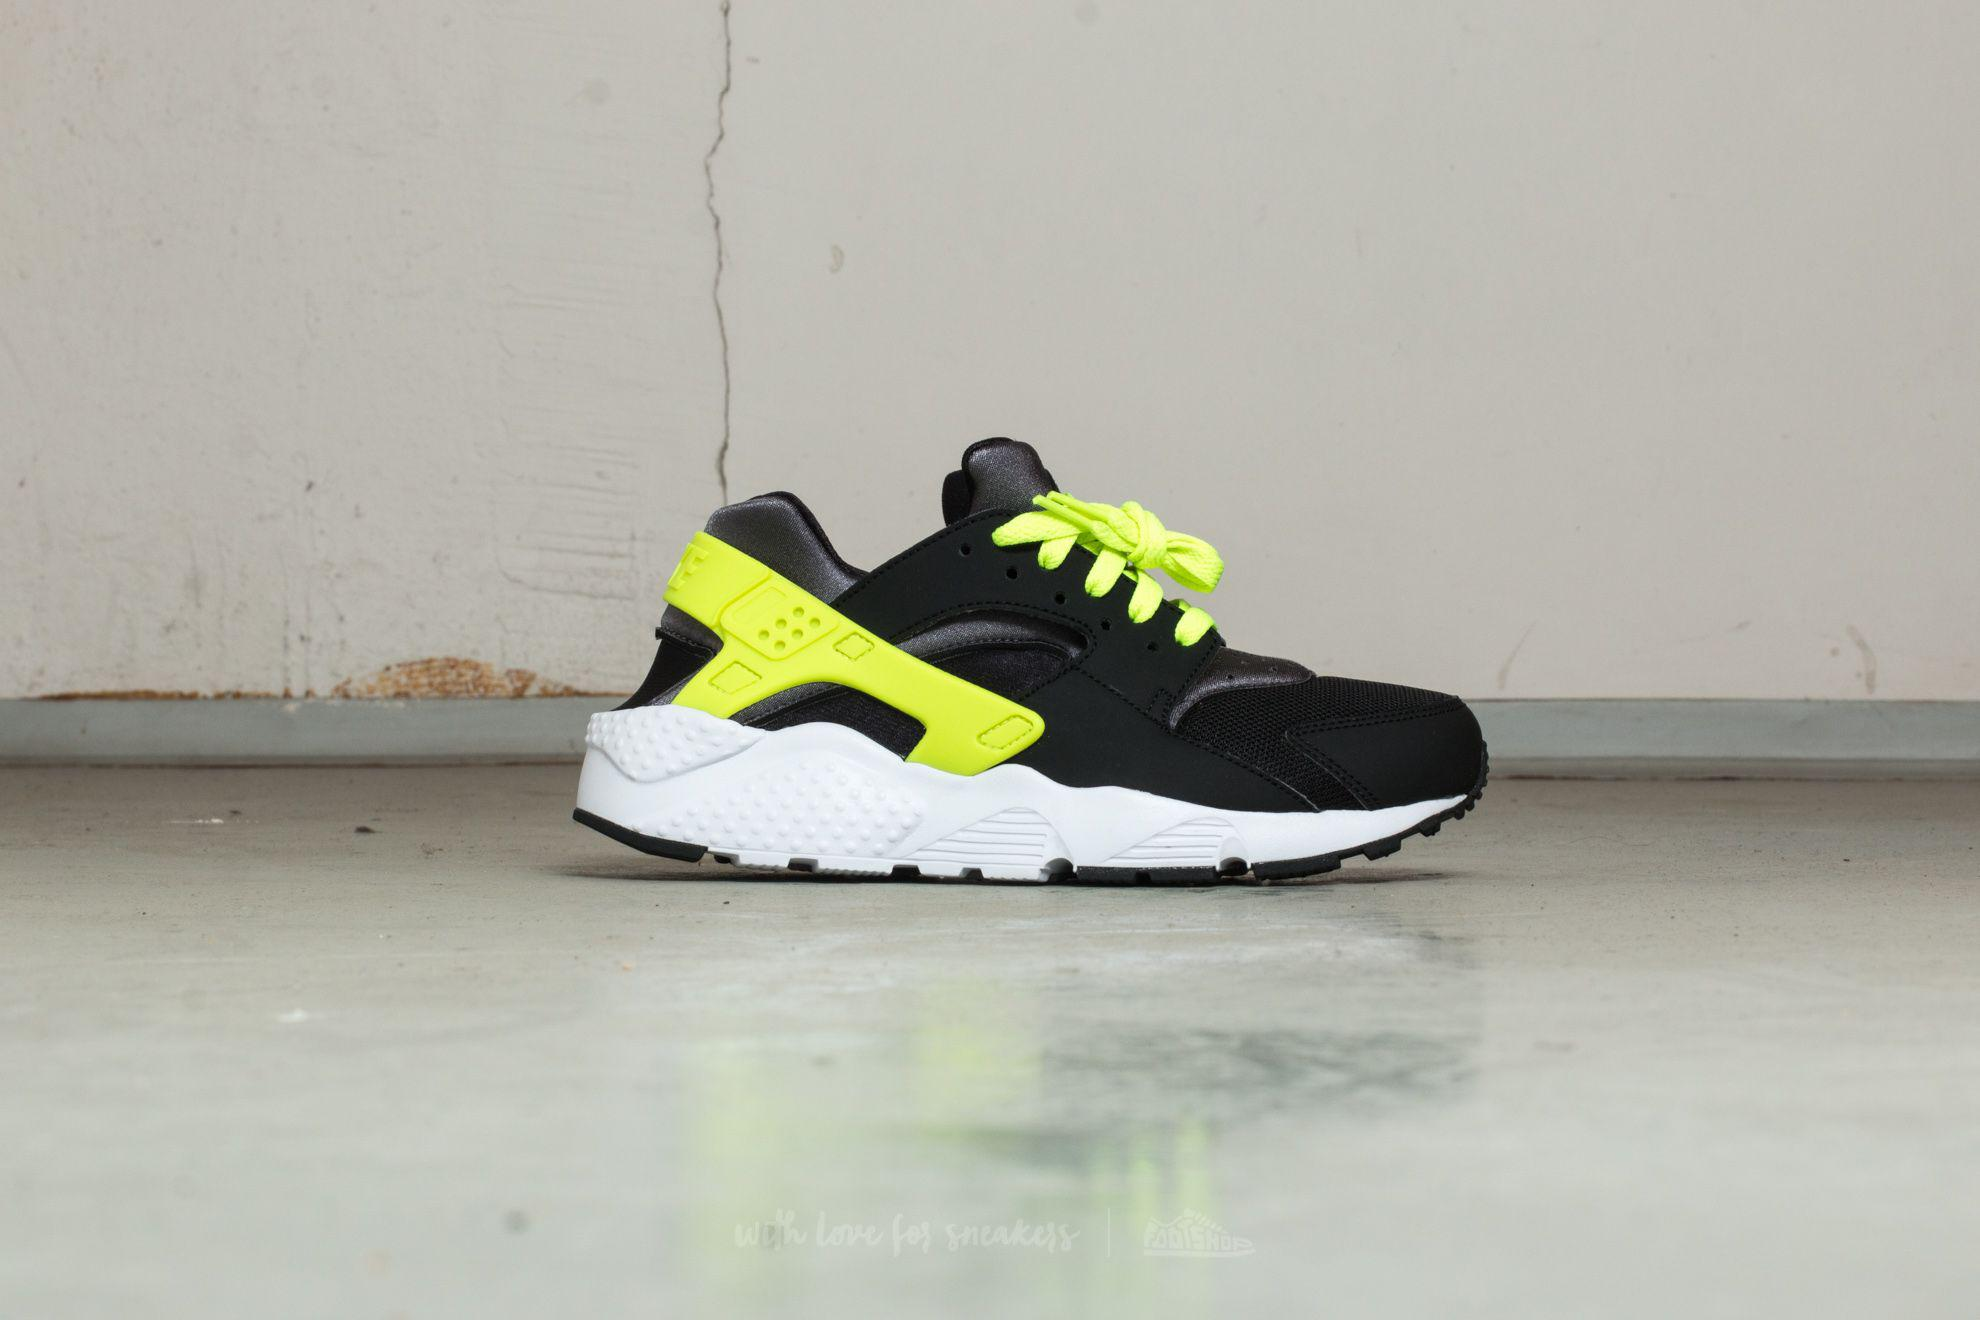 5750f4ca87500 ... sweden lyst nike huarache run gs black volt dark grey white for men  04e90 ead71